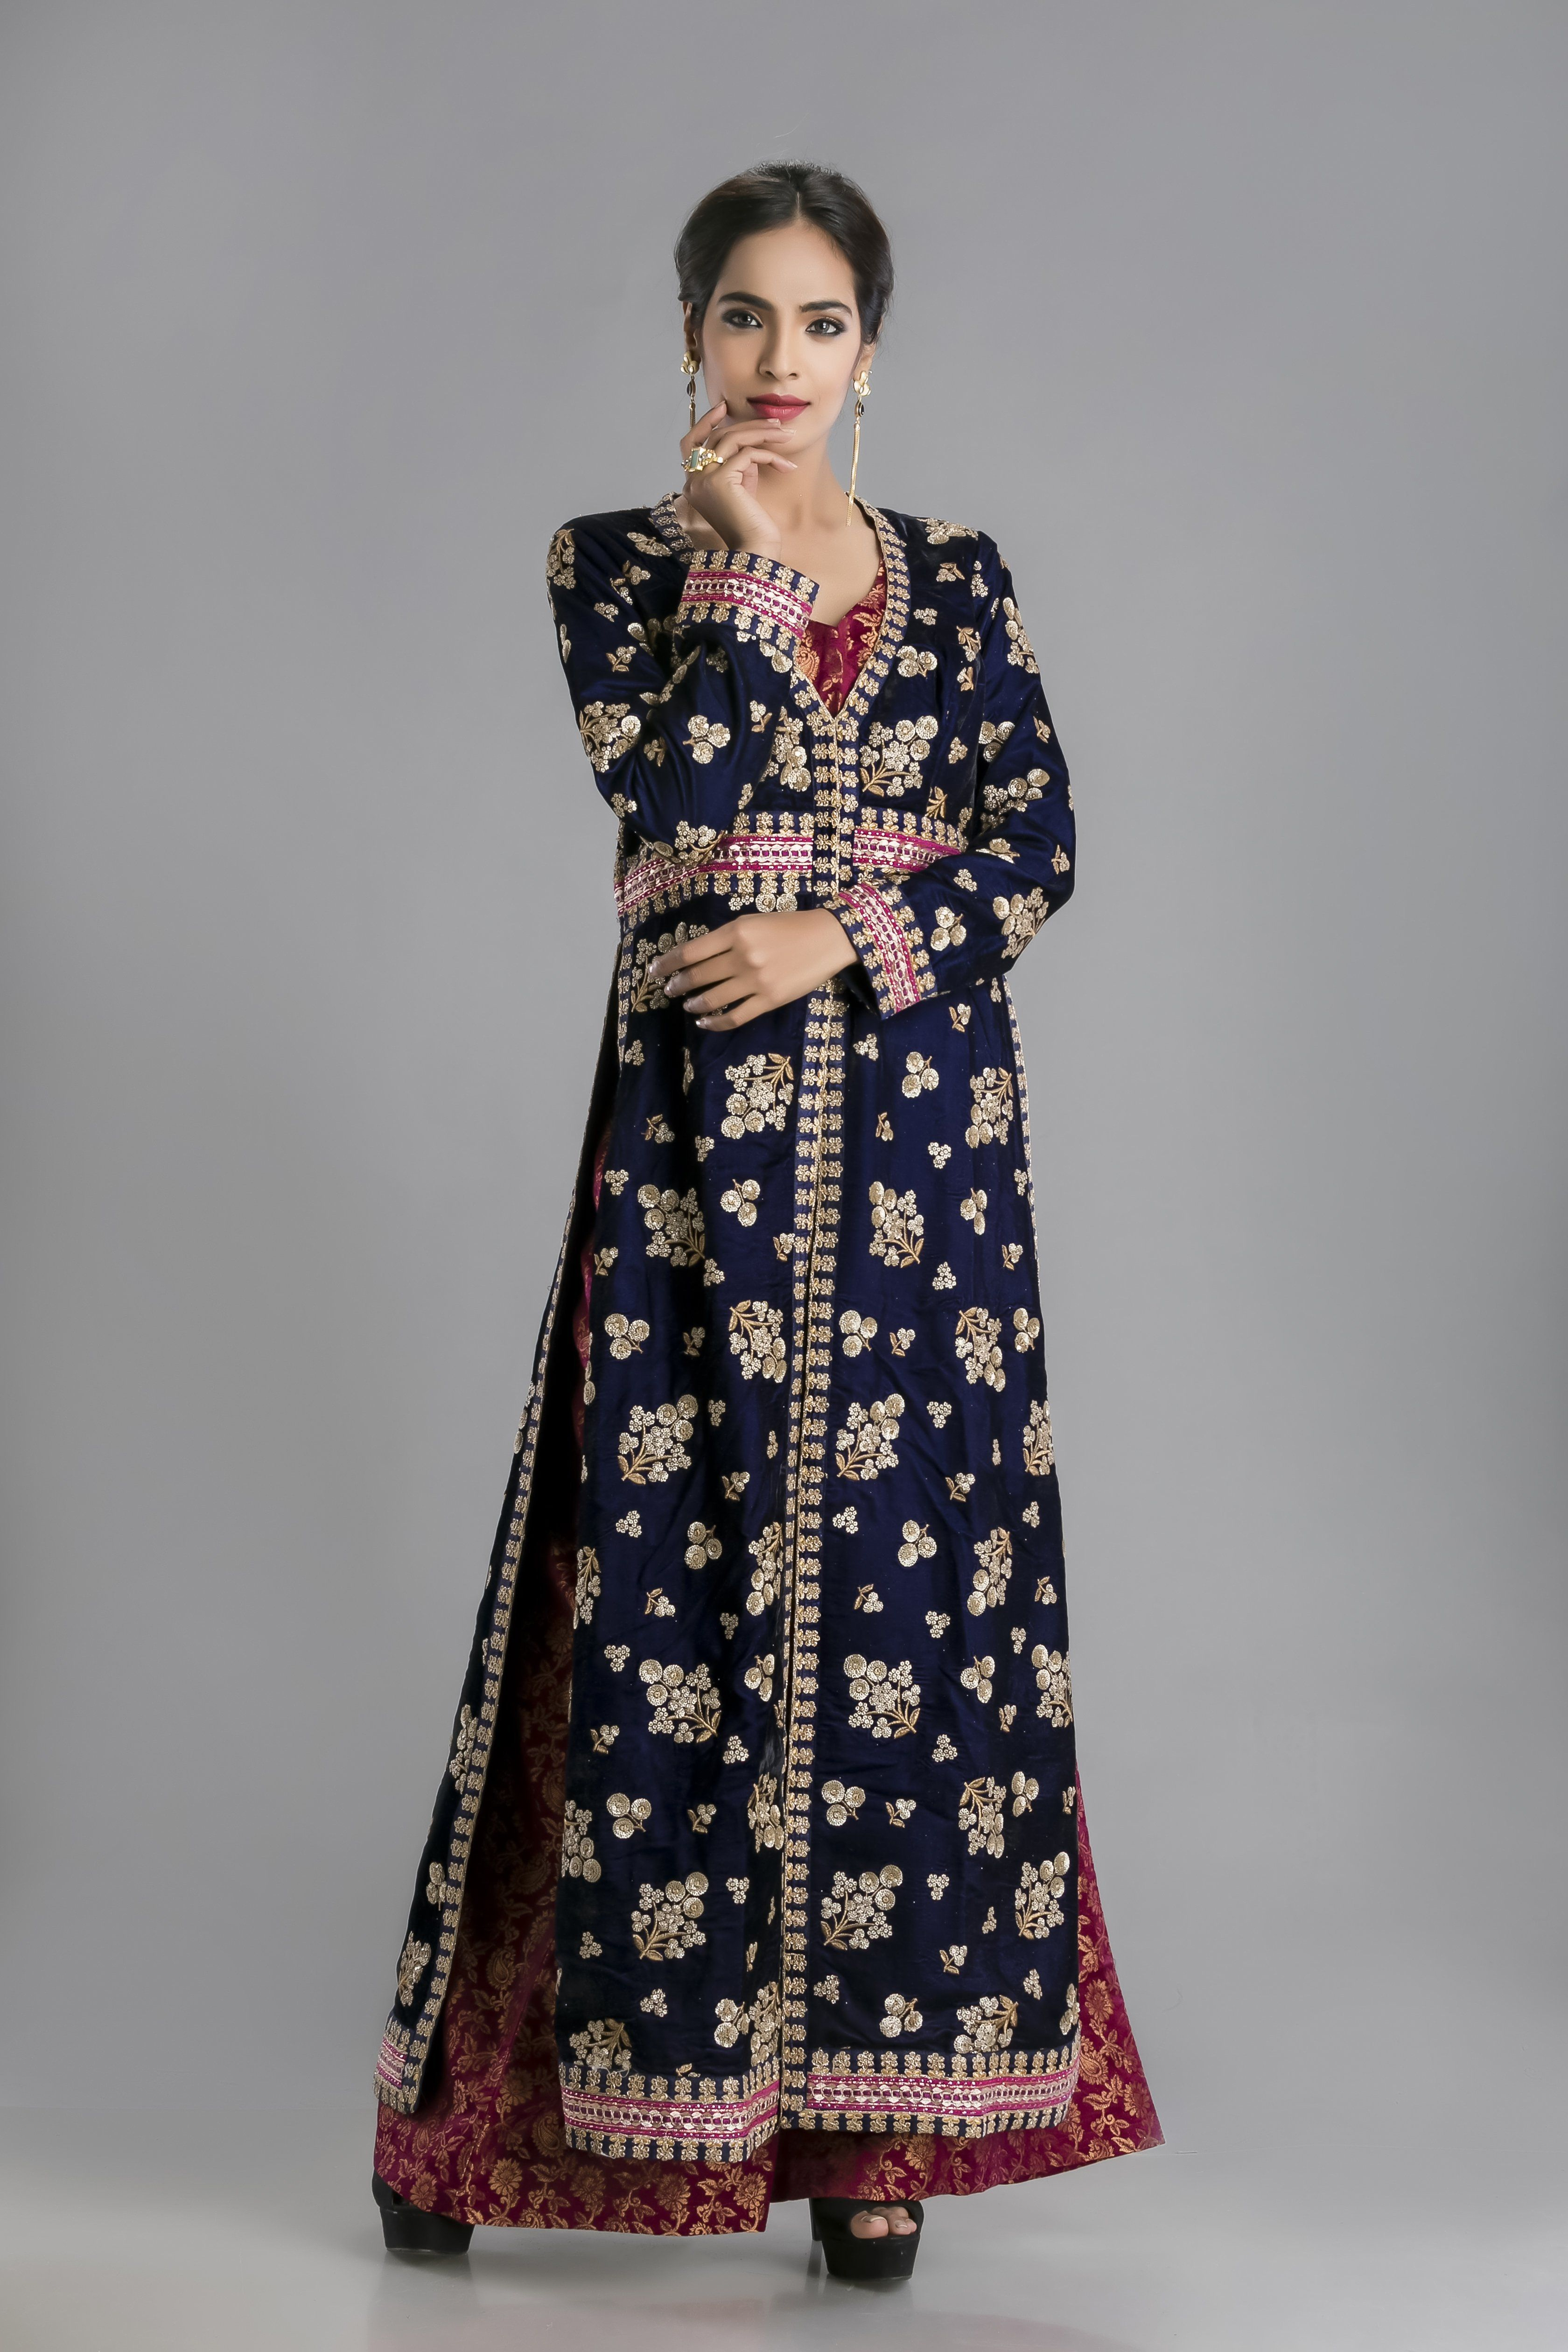 The nile blue velvet long kurta gown with brocade palazzothe